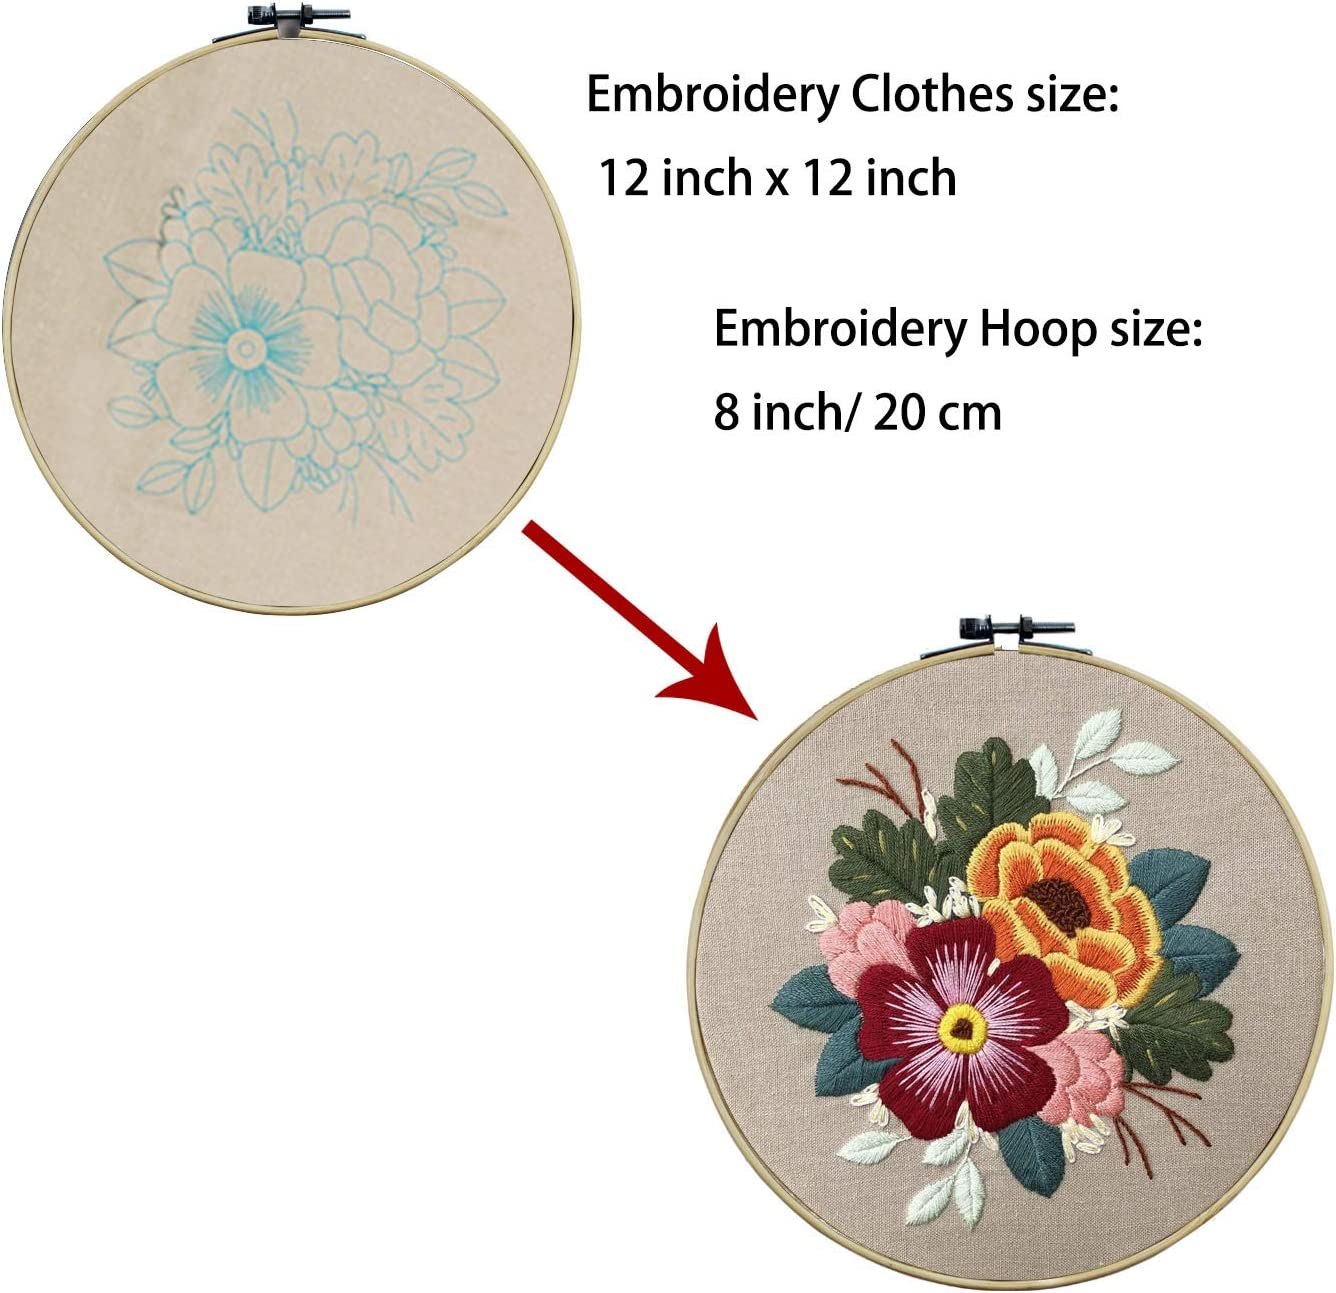 Ourart 3 Pack Embroidery Starter Kit with Pattern Color Threads Tools Bamboo Embroidery Hoop